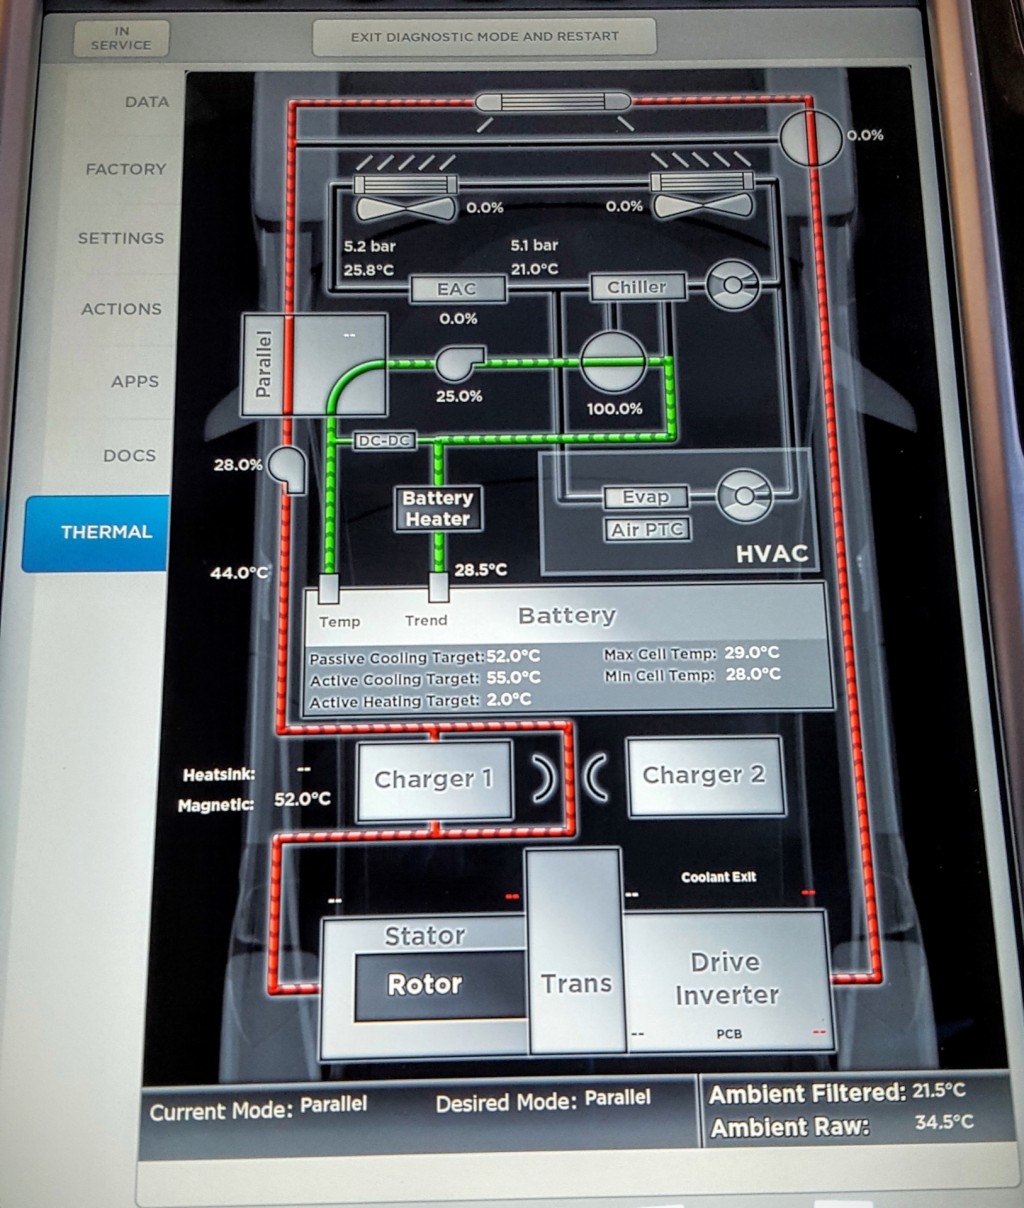 Image: Tesla Model S Thermal Management Screen